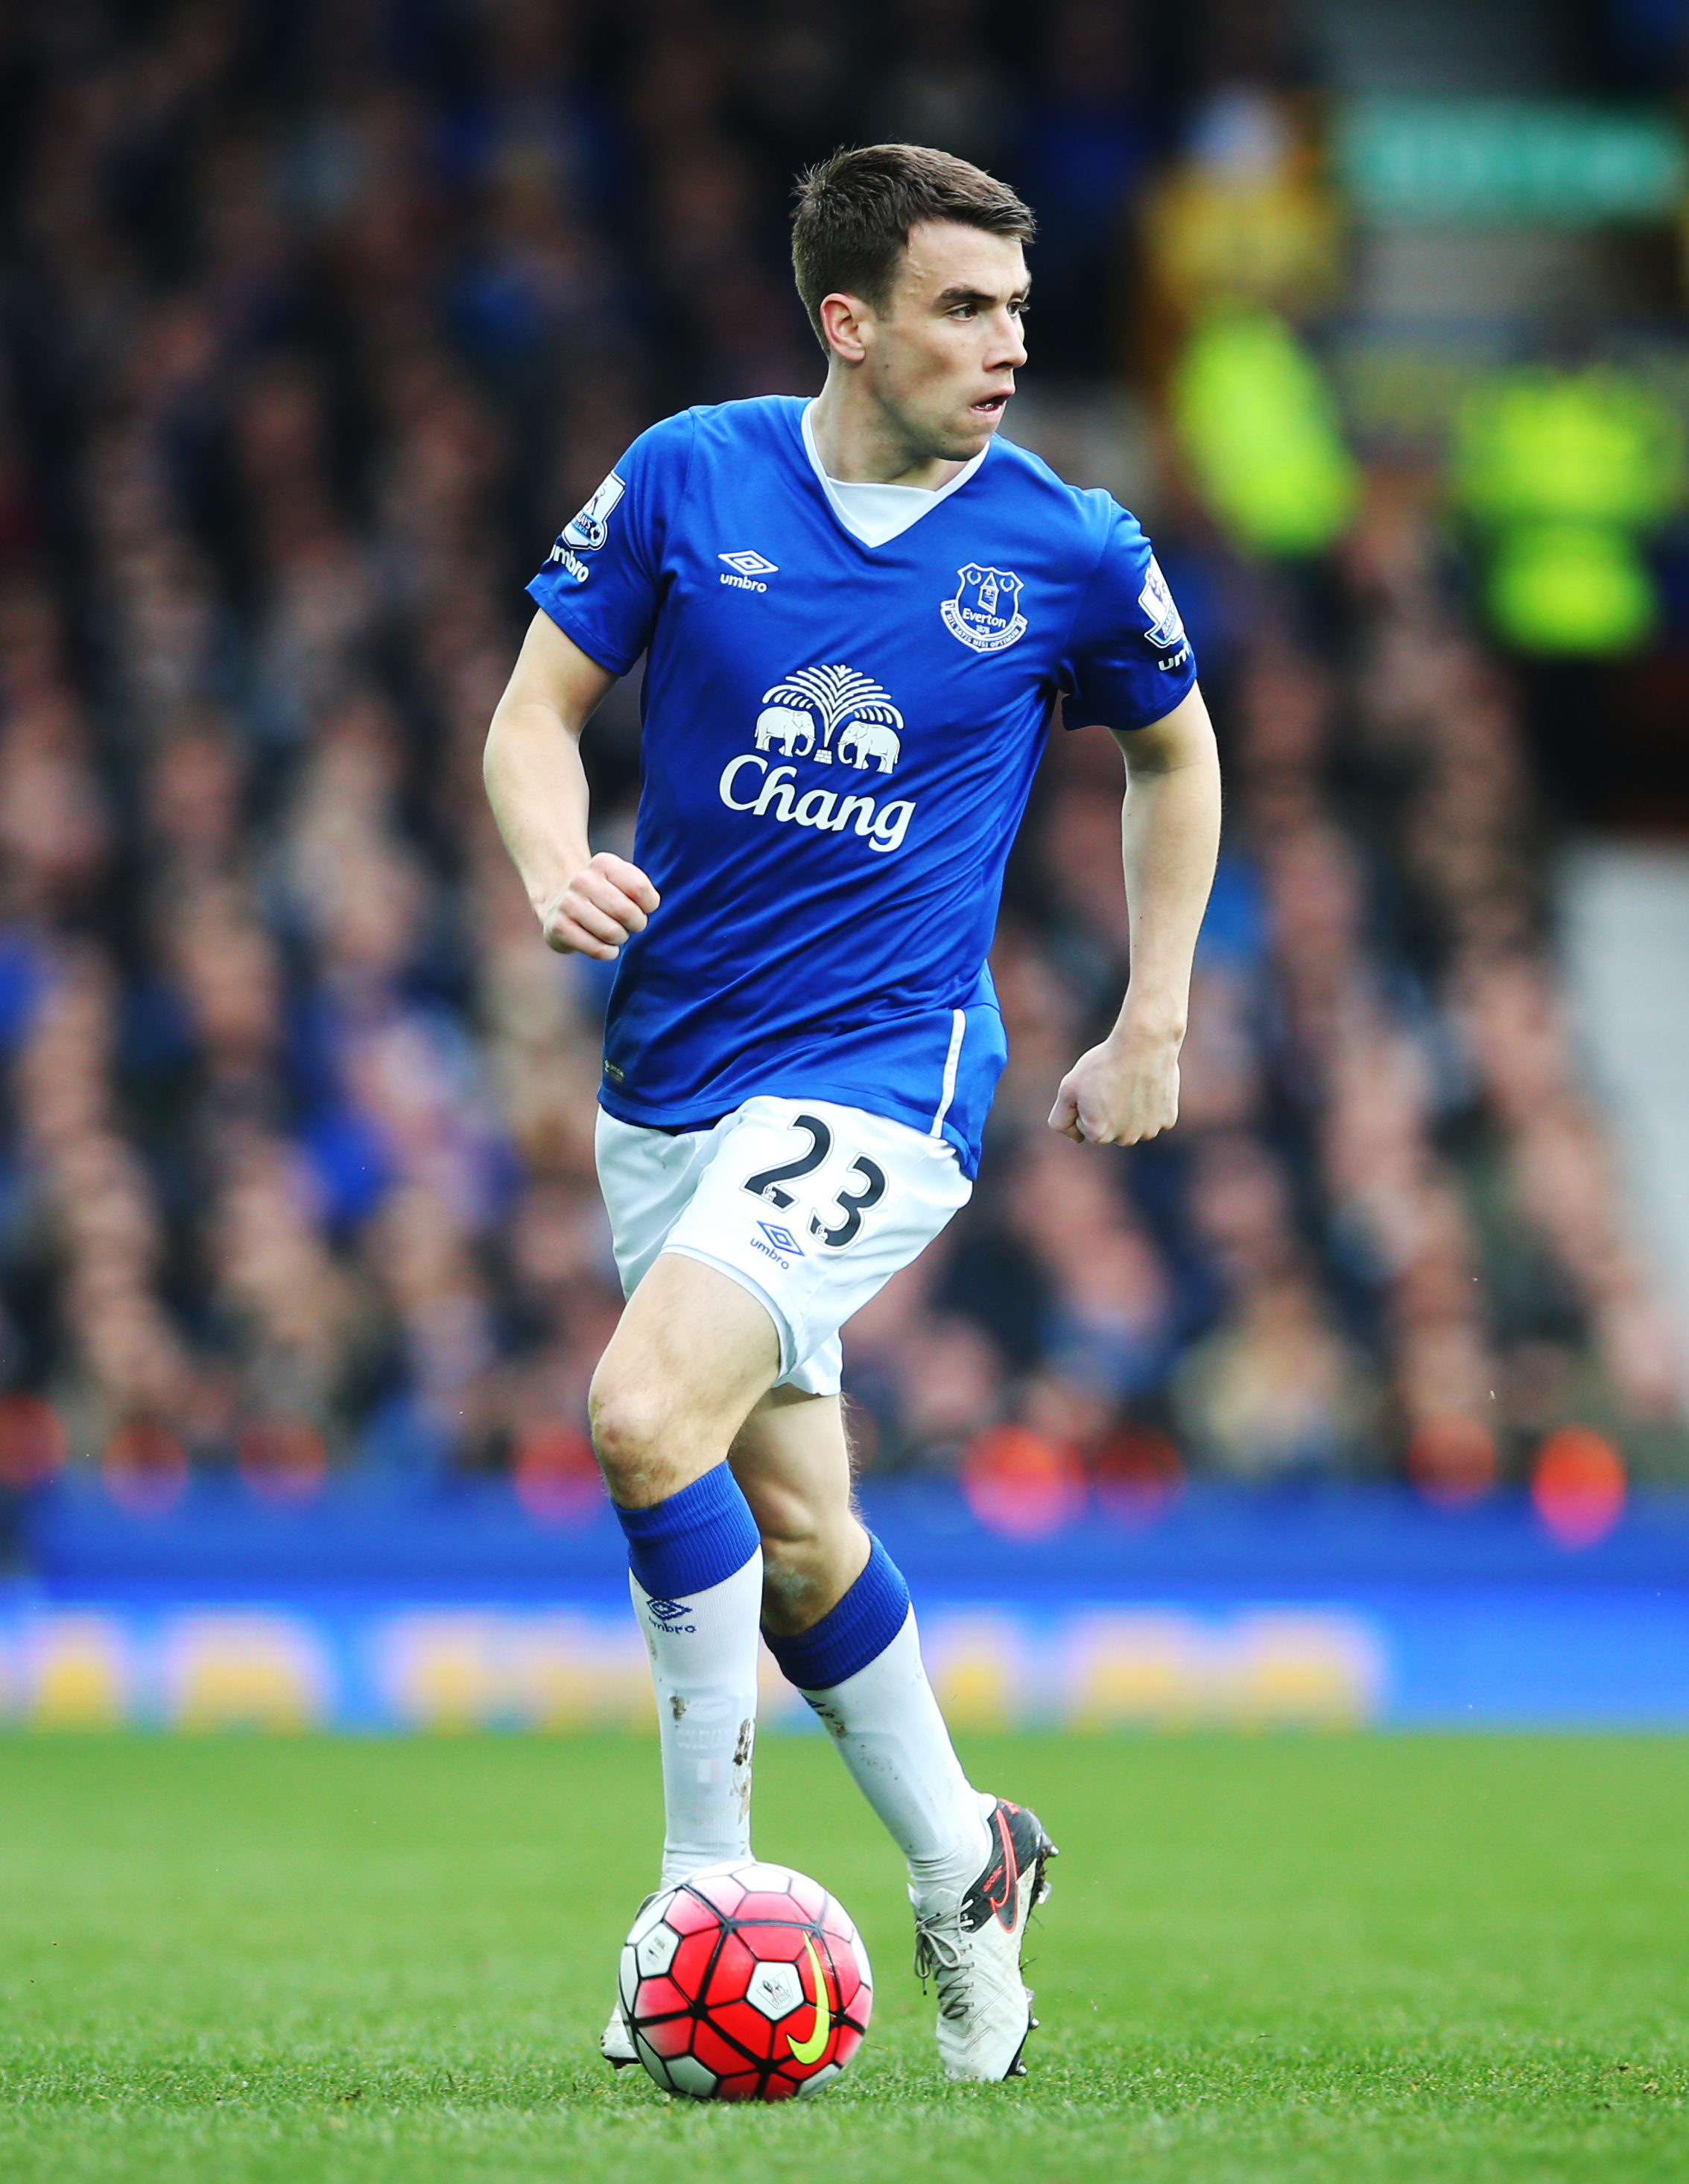 Seamus Coleman is one player who could be replaced using the funds brought in by Everton's new owner.